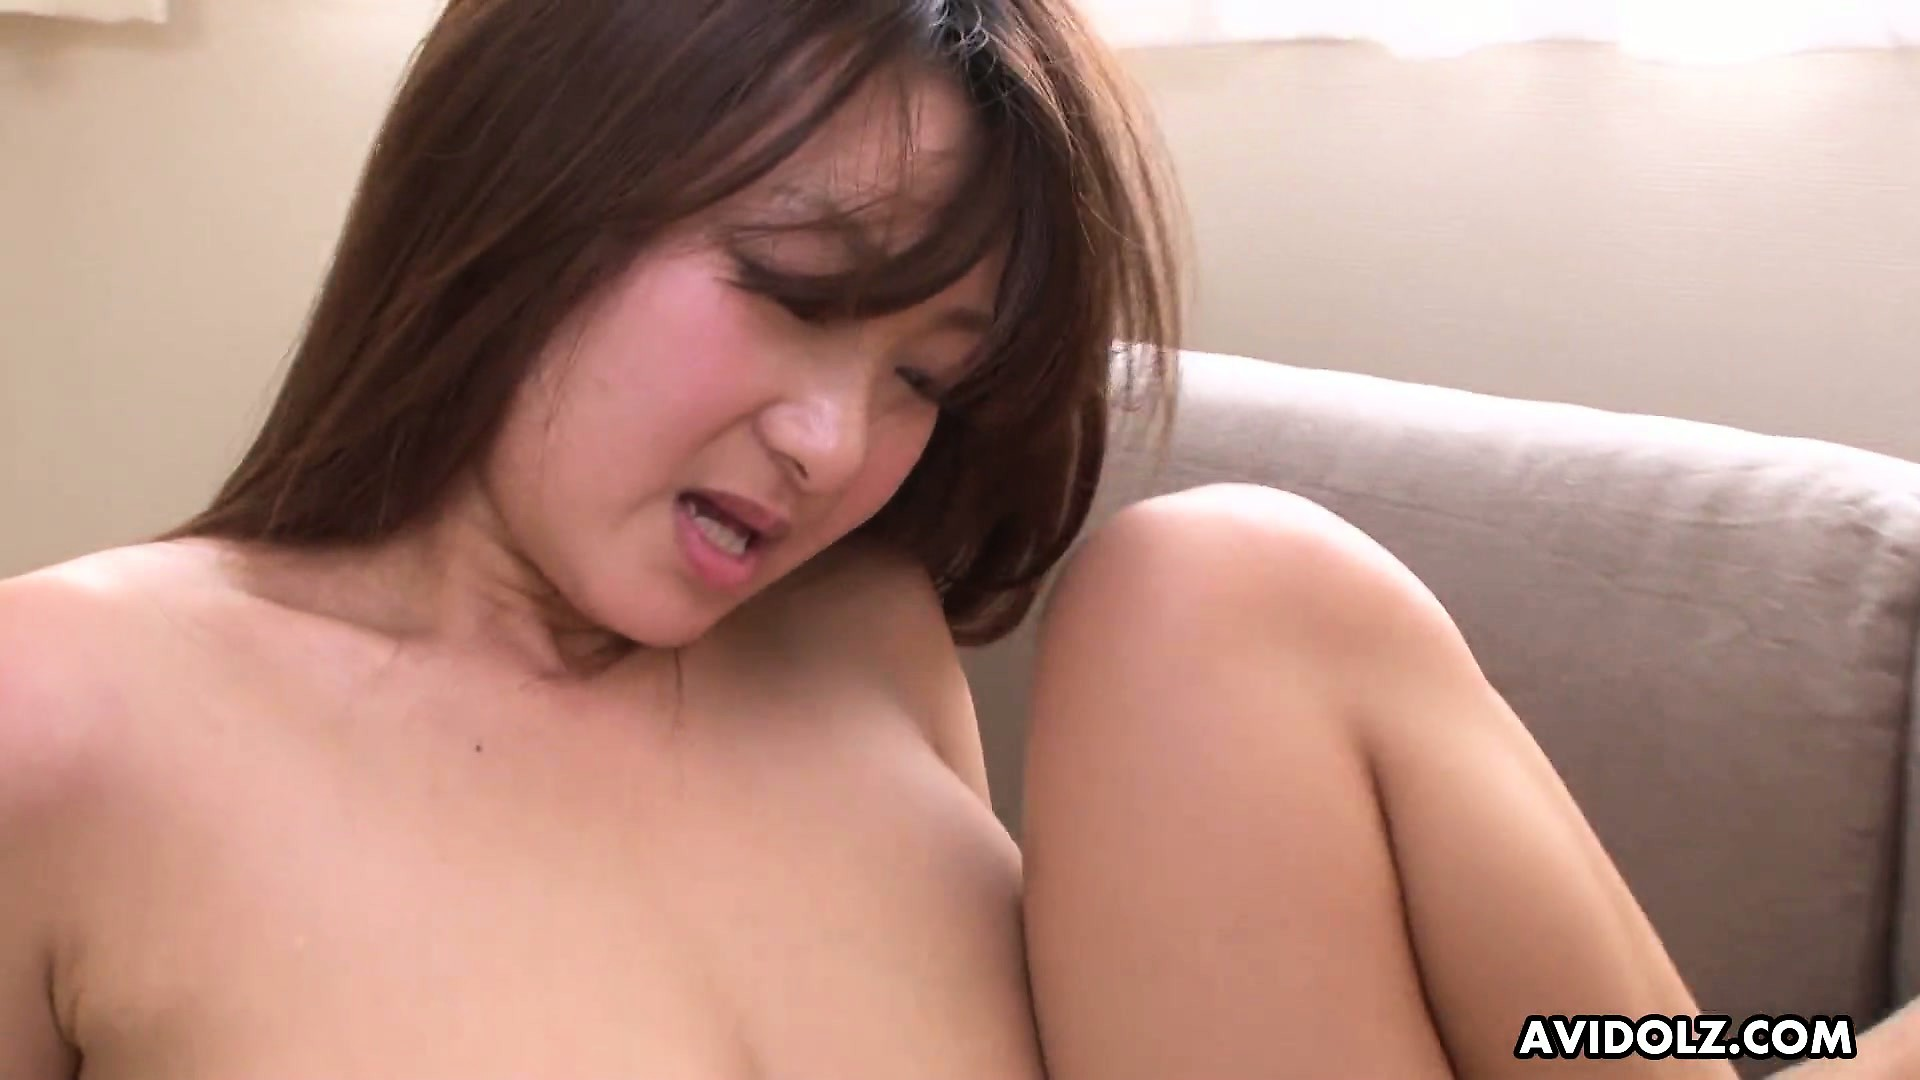 Porn Tube of Innocent Cutie Displays Skills Picked Up During Gap Year To Surprised Priest